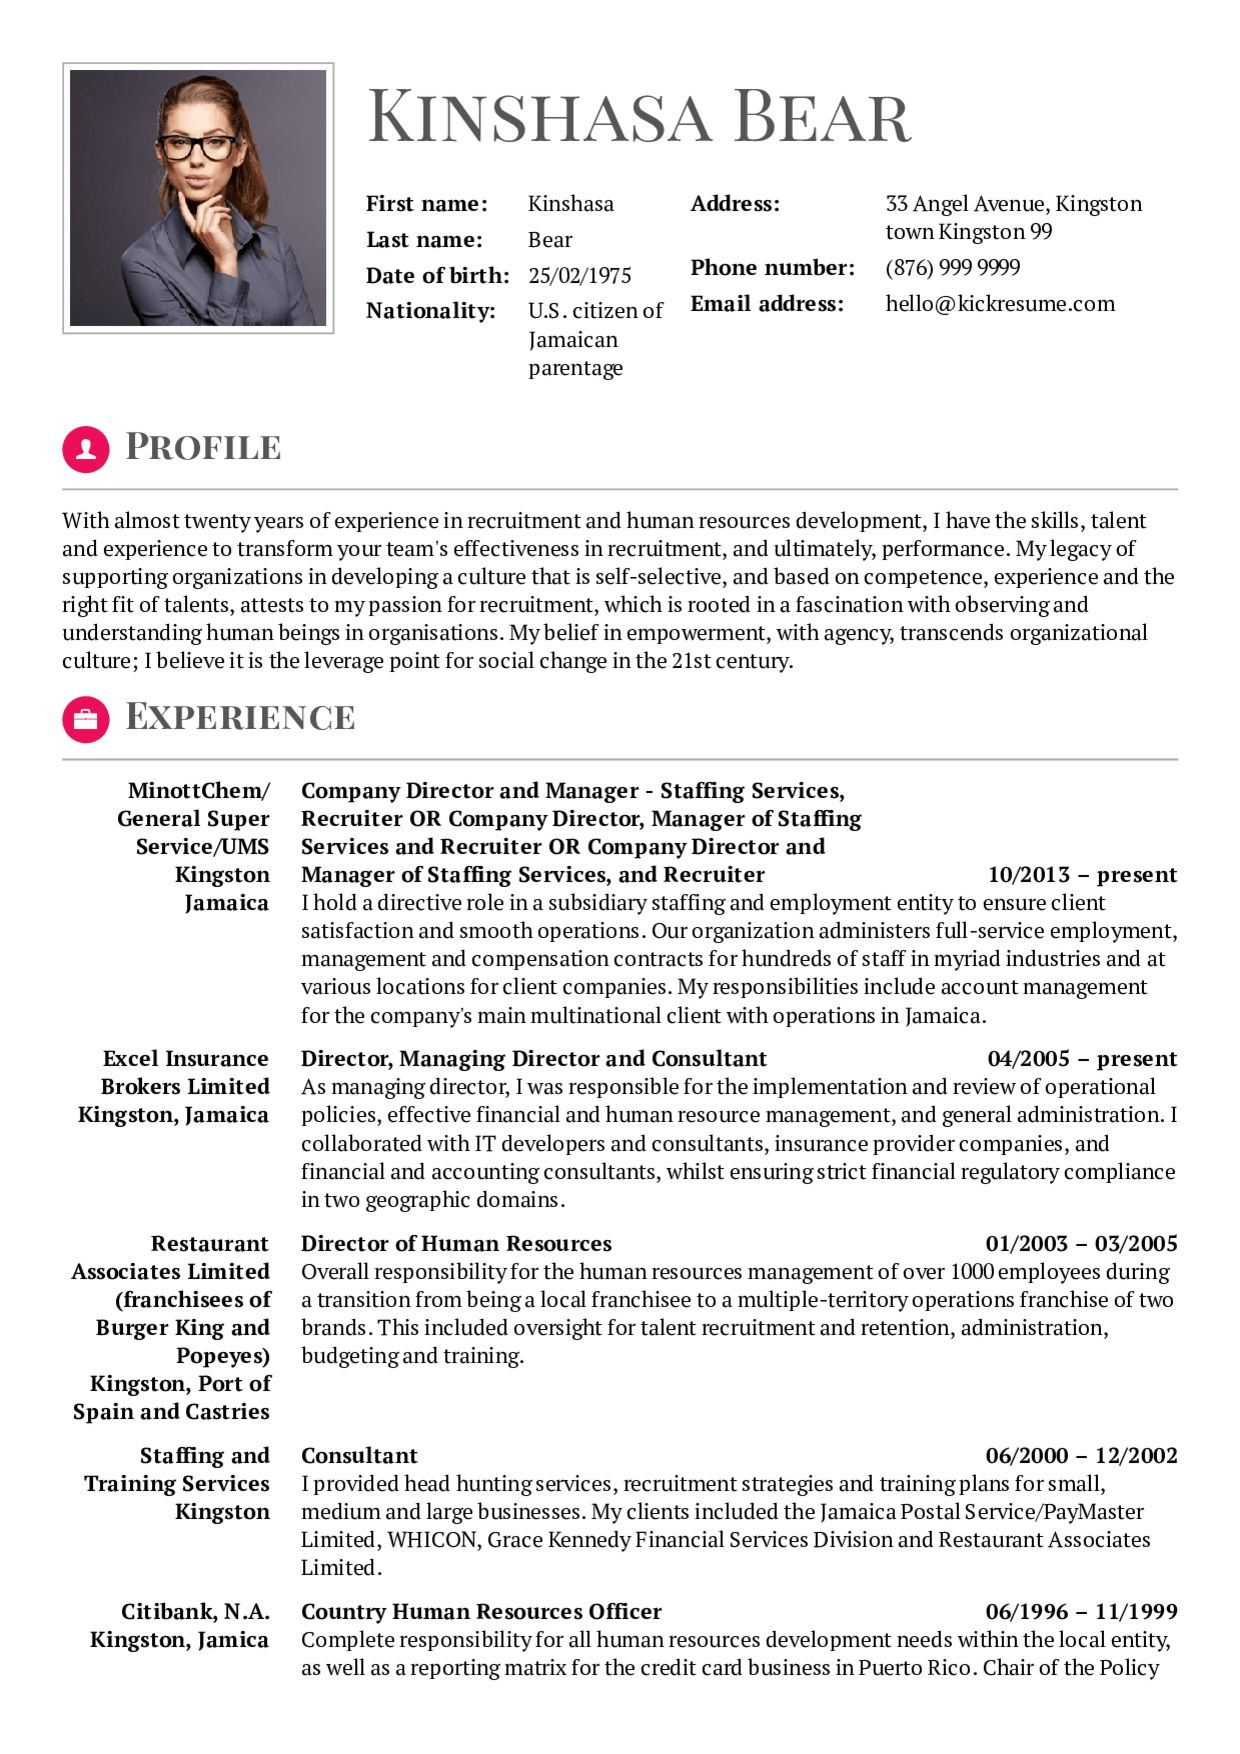 Here Some Writing Tips And Examples Of Human Resources Resume Resume Examples Human Resources Resume Resume Words